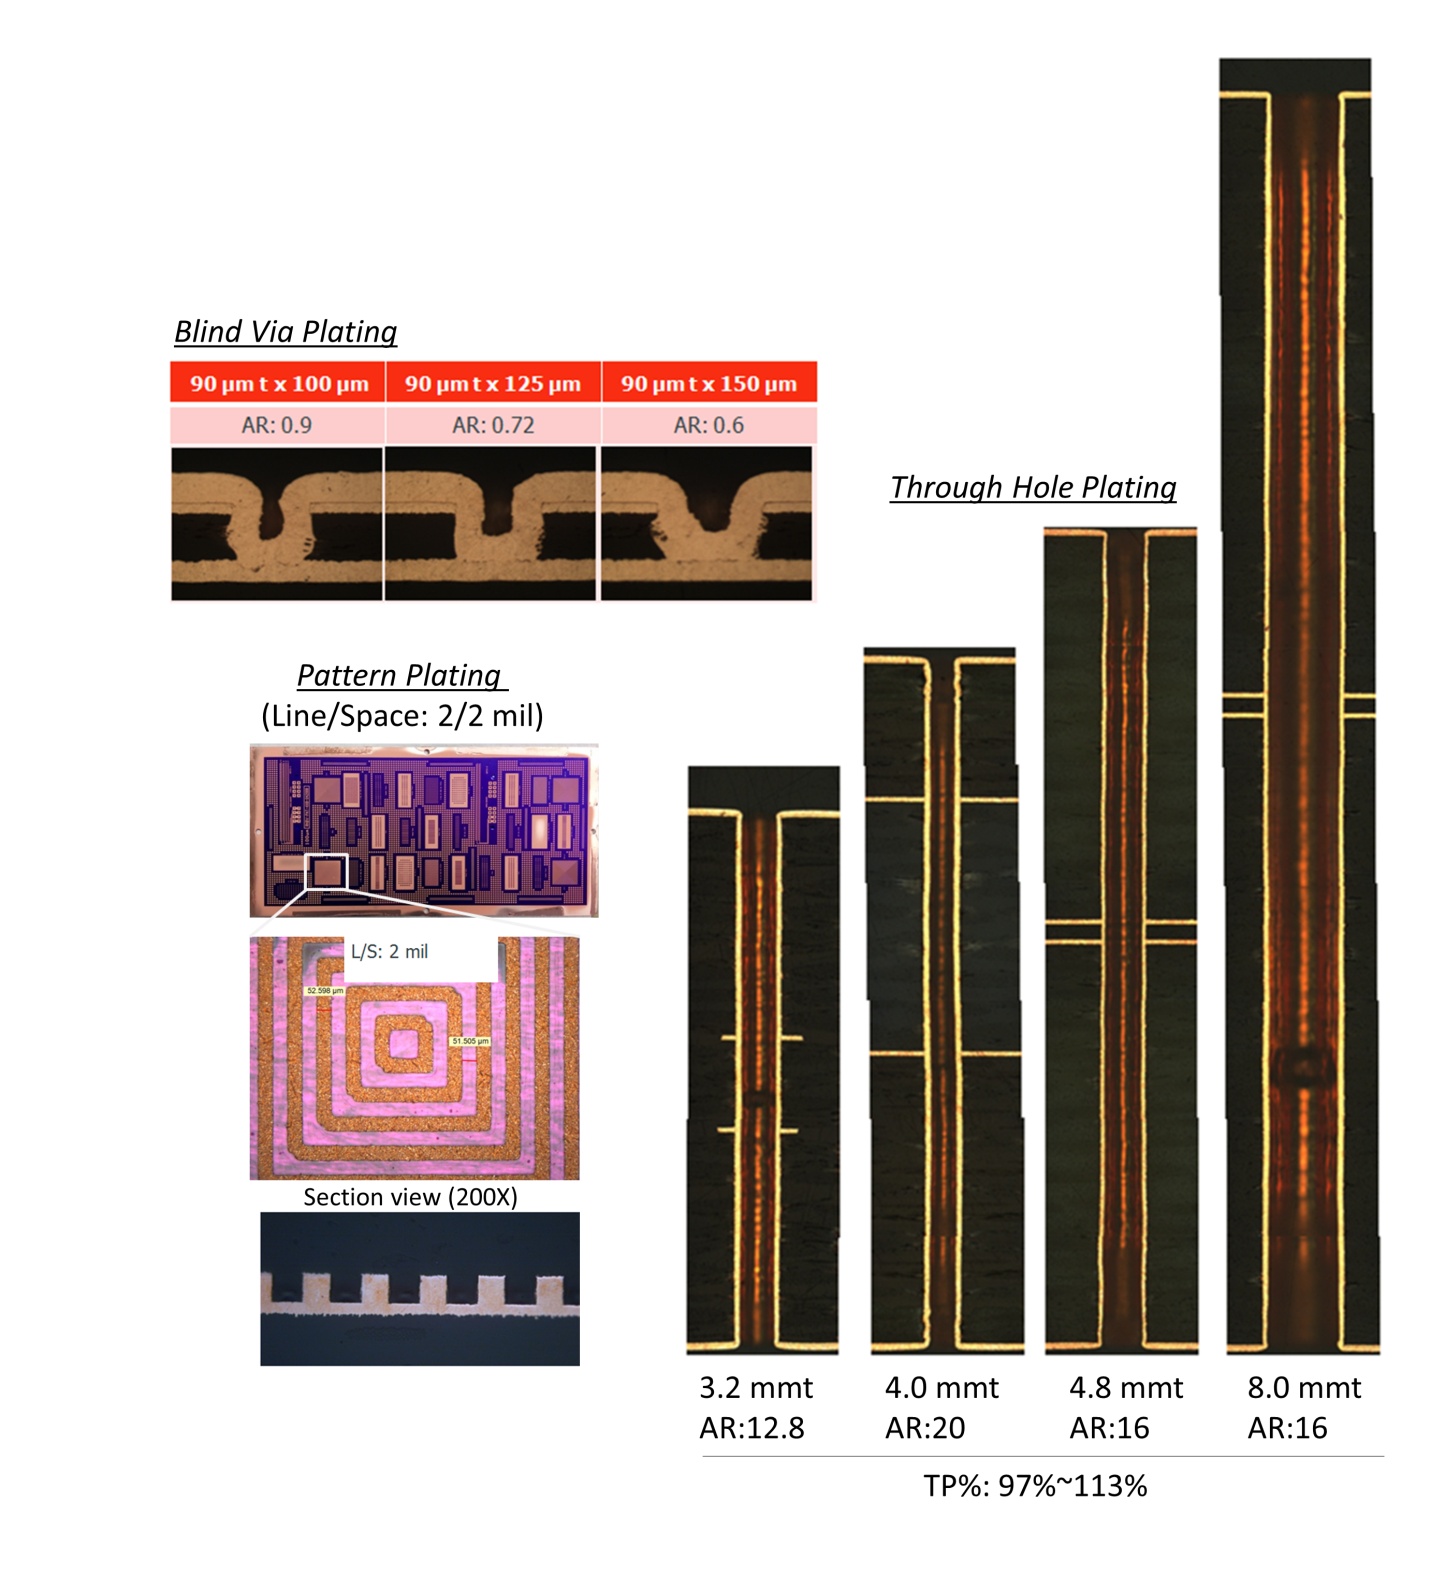 Advancing the thick PCB manufacturing process for 5G